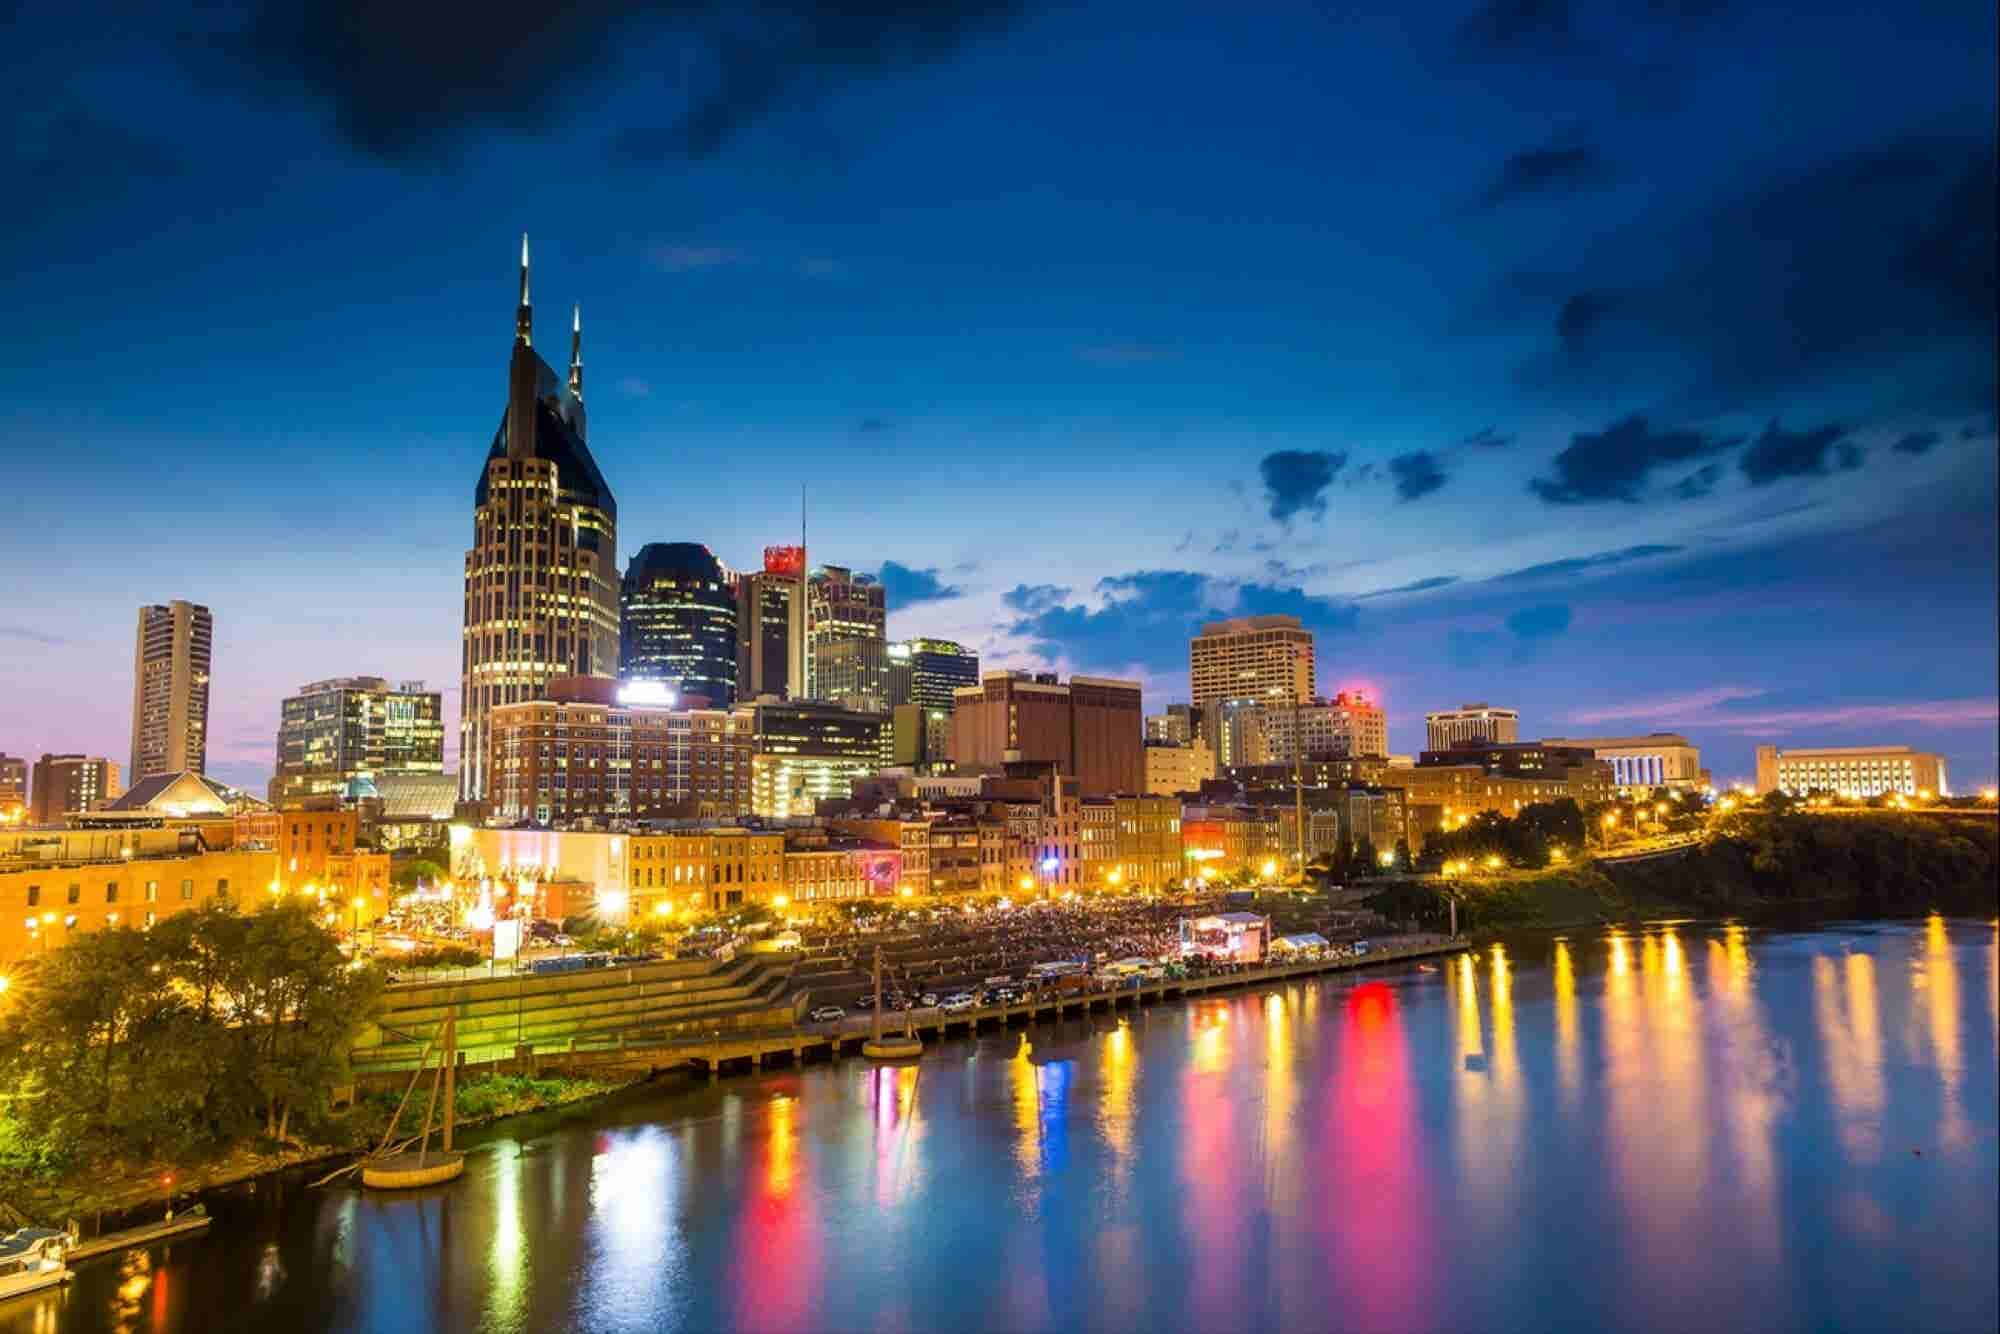 Starting Up in Nashville: What Music City Offers Entrepreneurs